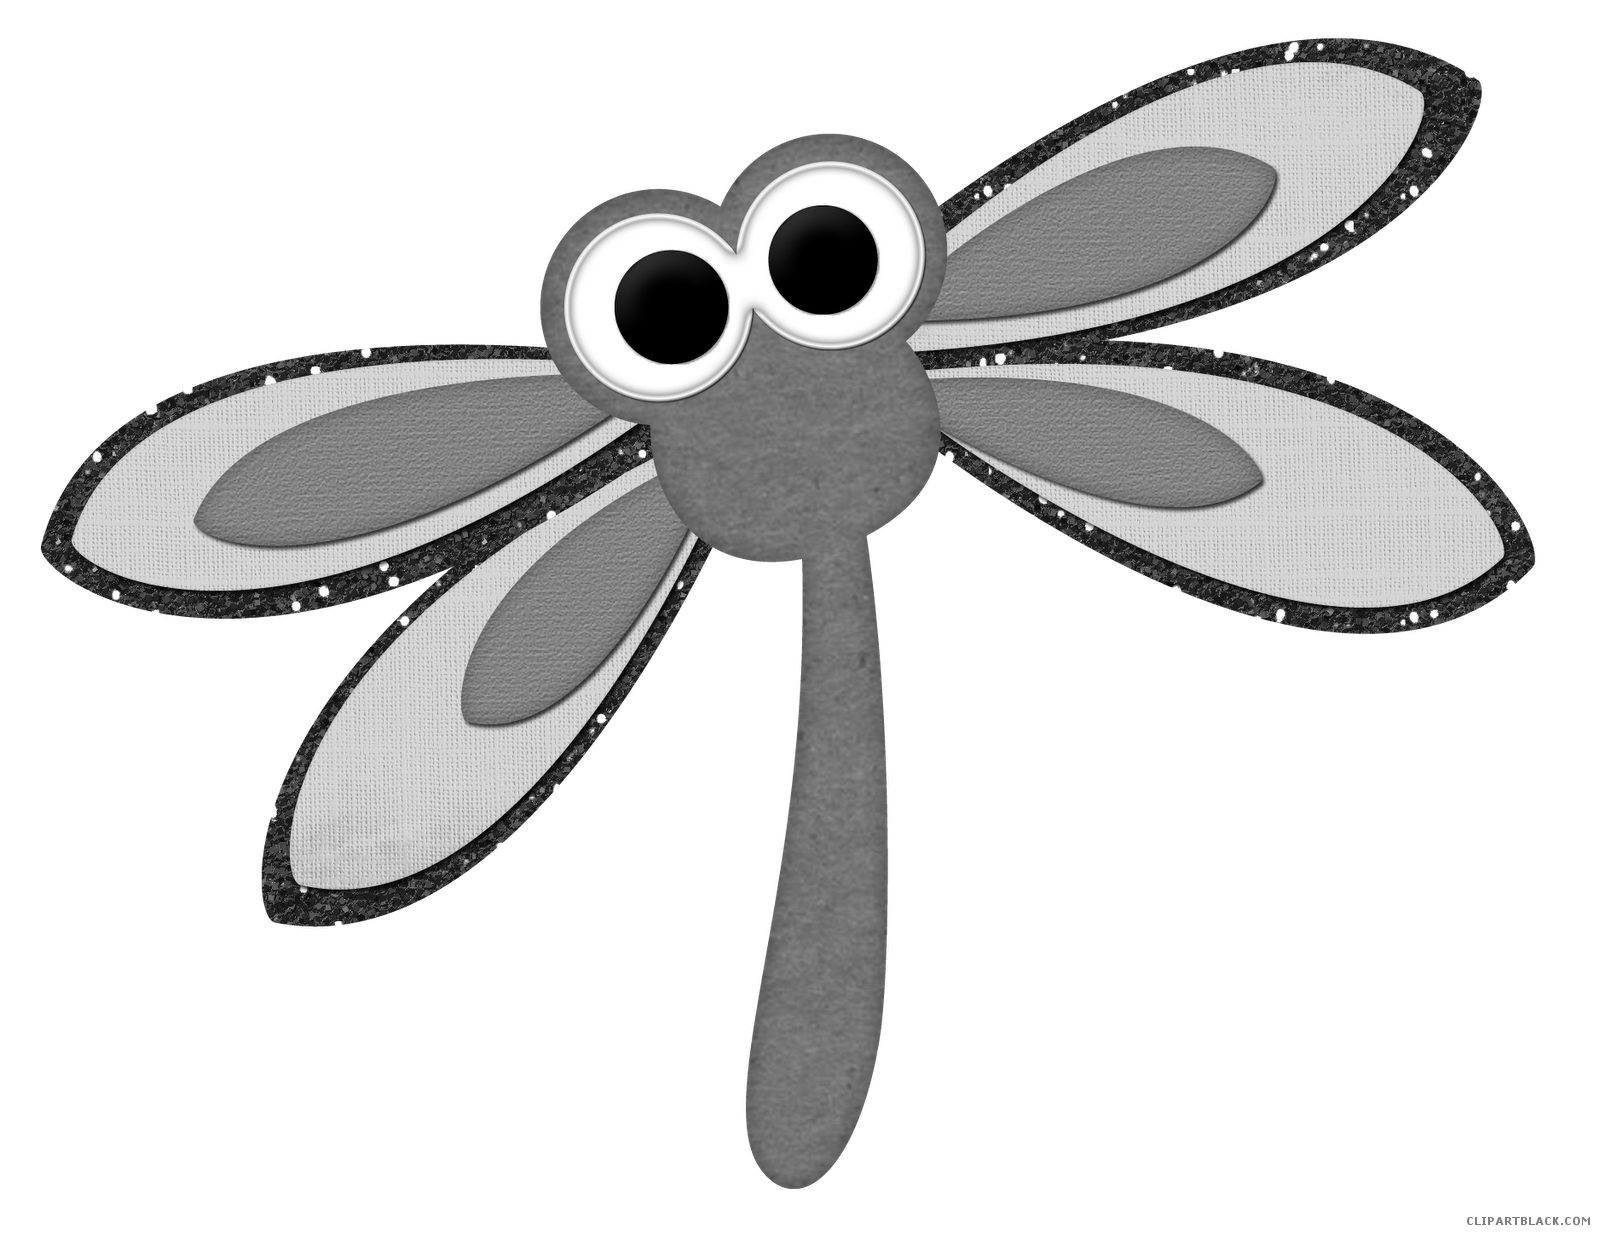 Dragonfly clipart insect. Drawing clip art transprent